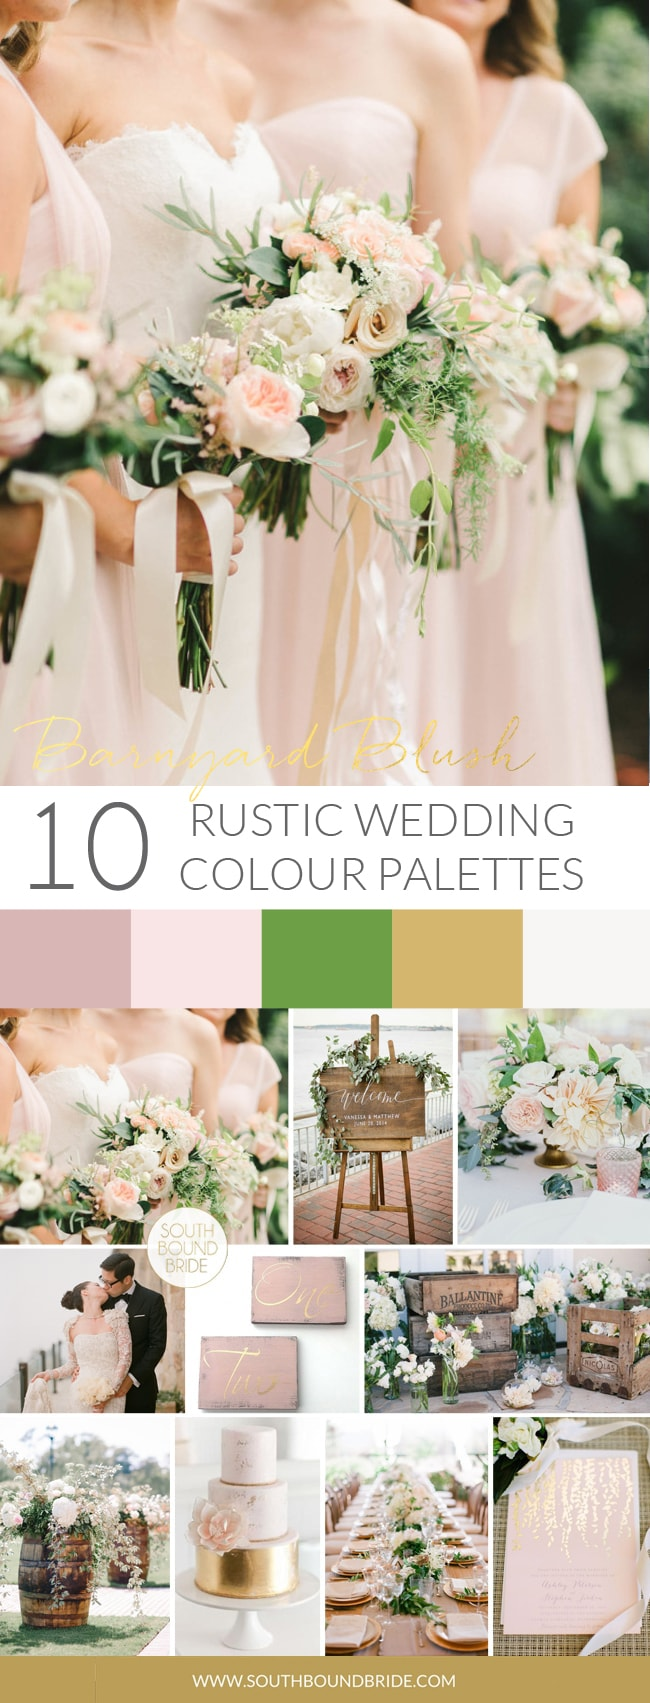 Barnyard Blush Rustic Wedding Palette | SouthBound Bride